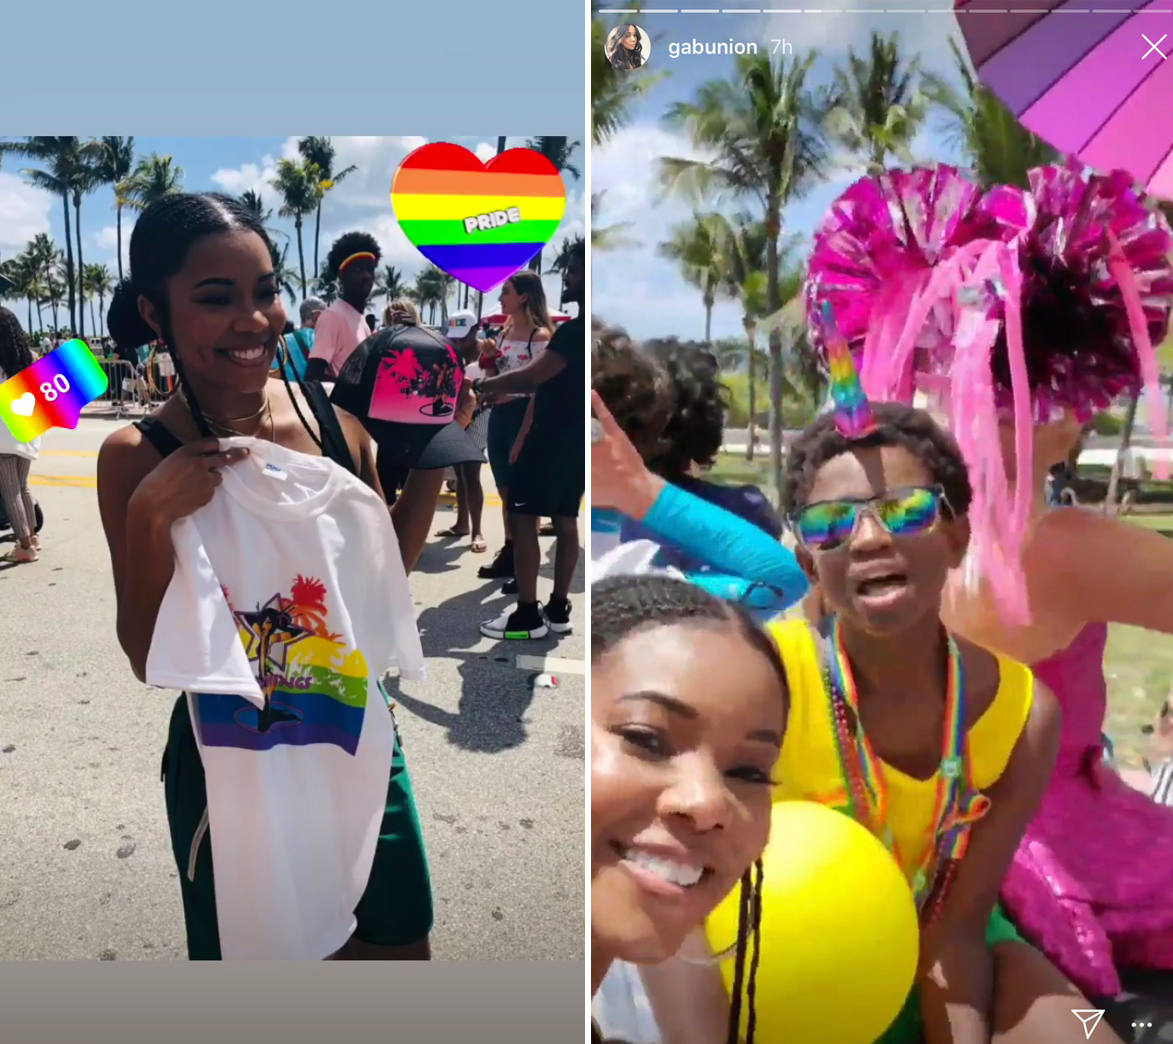 Gabrielle-Union-Supports-Dwyane-Wade's-11-Year-Old-Son-at-Gay-Pride